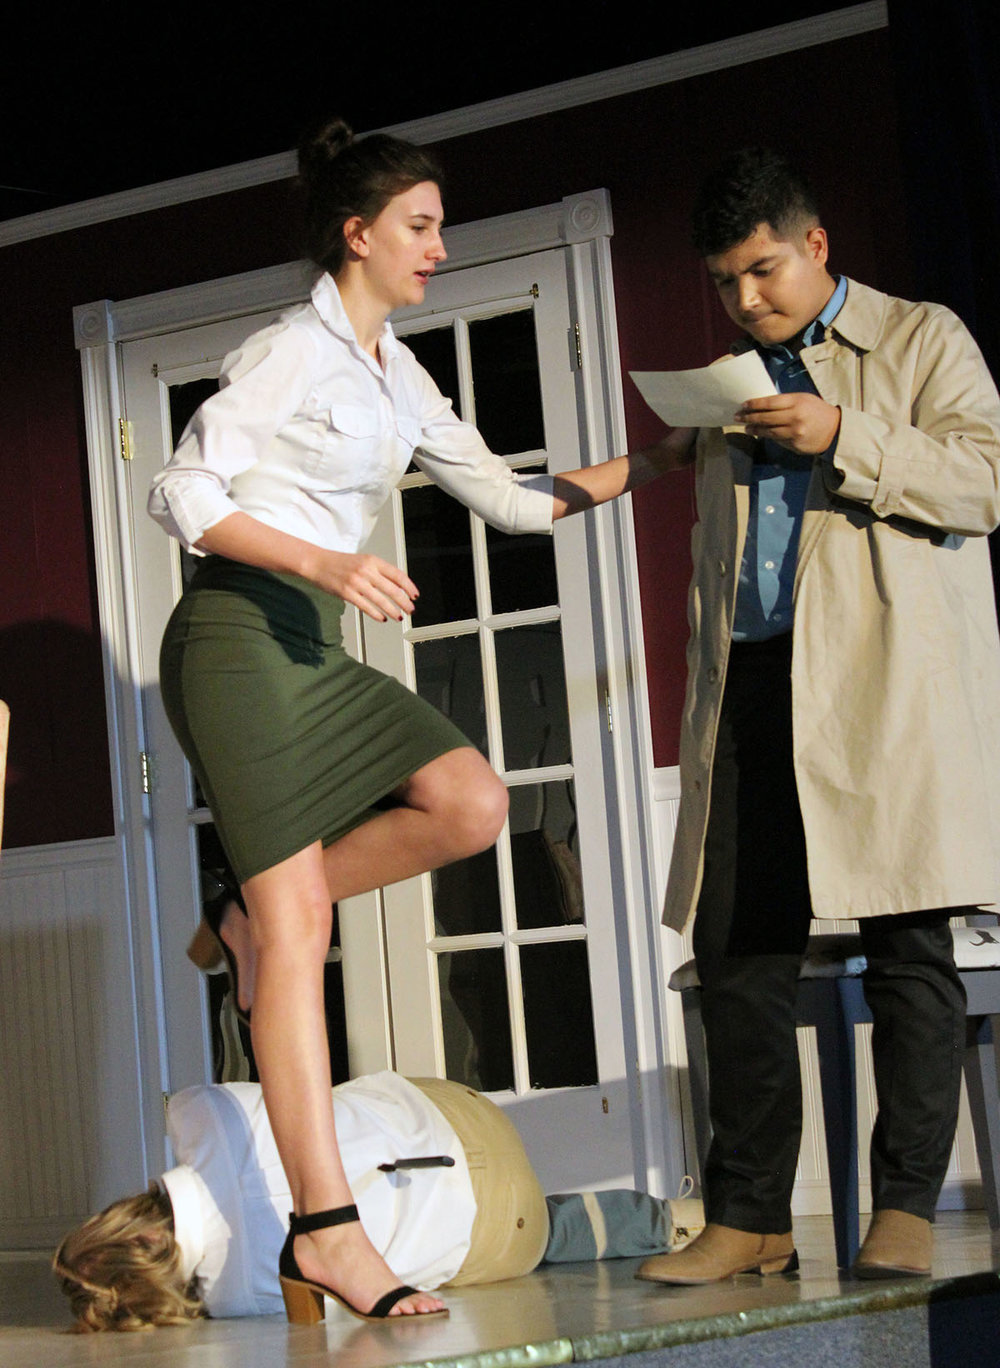 During a scene in Henley High School's production of Murder Runs in the Family, Heather Pallfeather (Kate Harter) steps over a murdered Western Union messenger (Haley Braswell) to read the message being held undercover detective Jack Sparks (Victor Manzo).